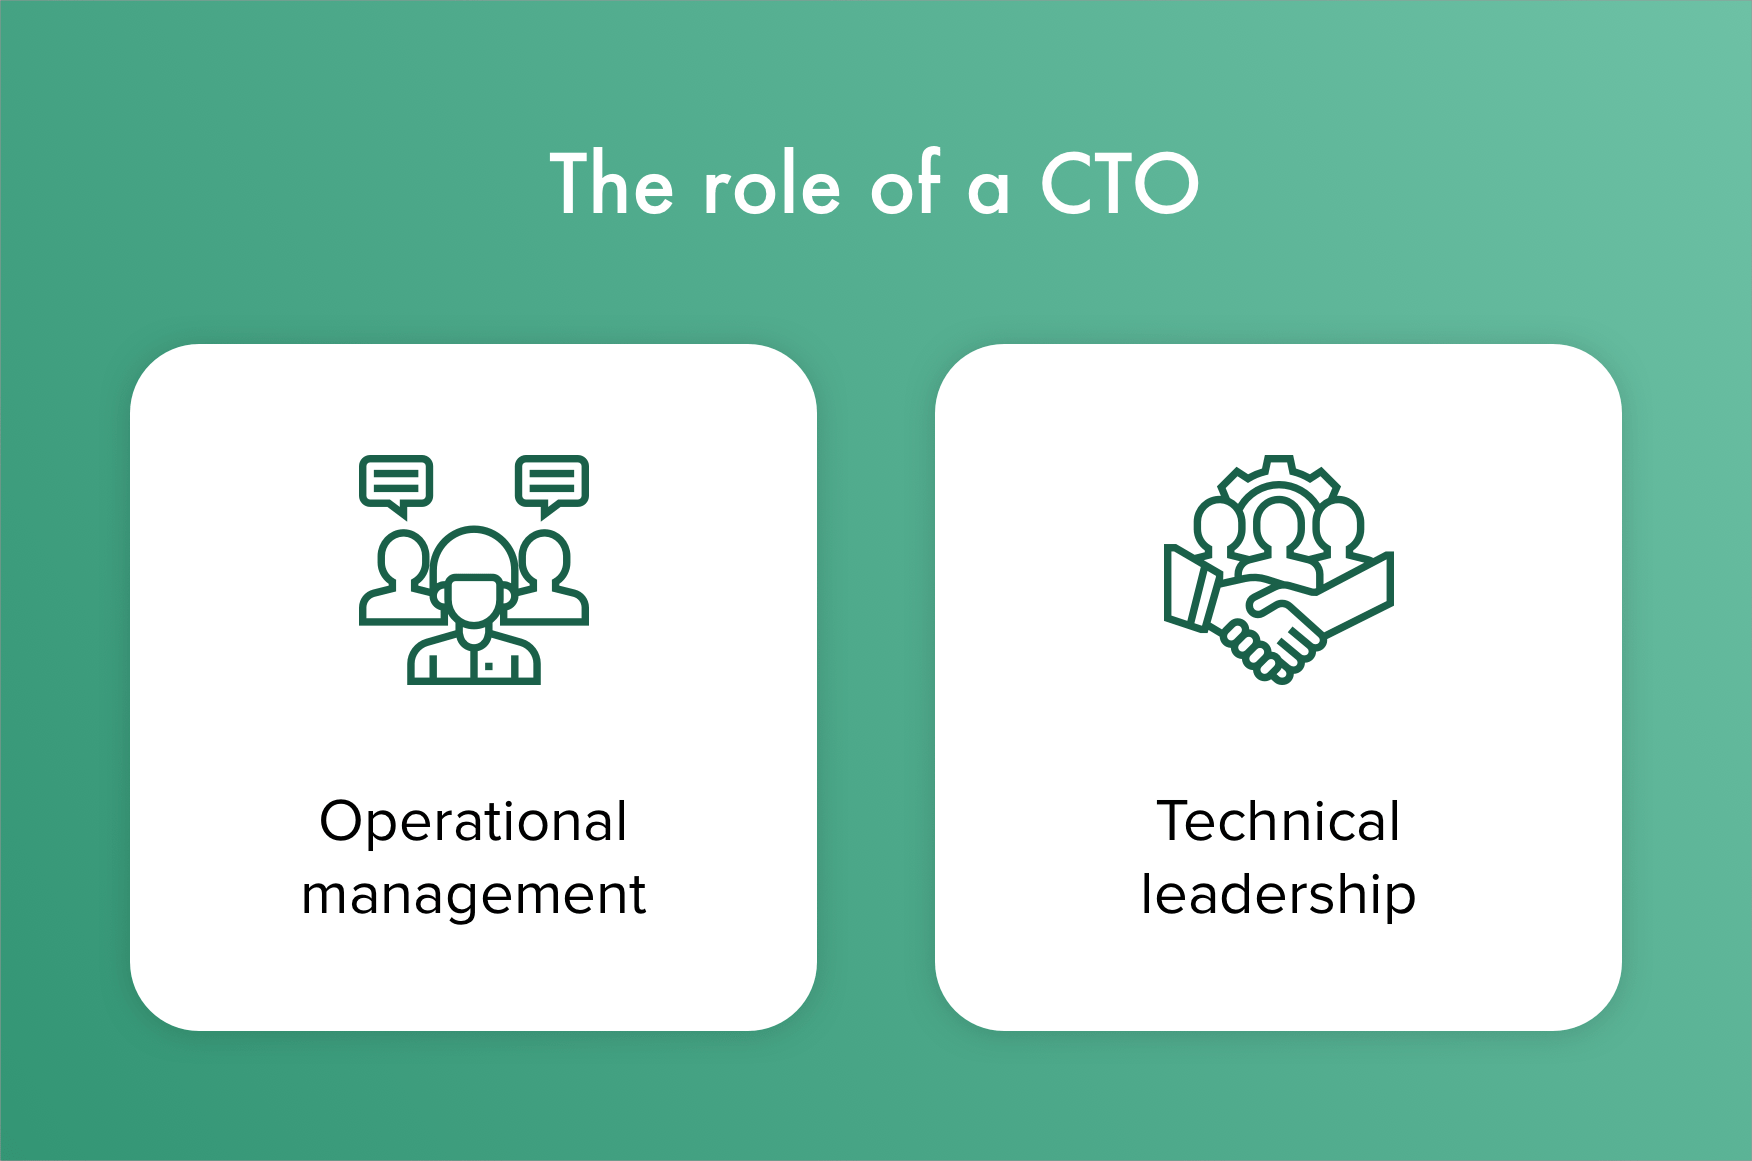 The role of a CTO